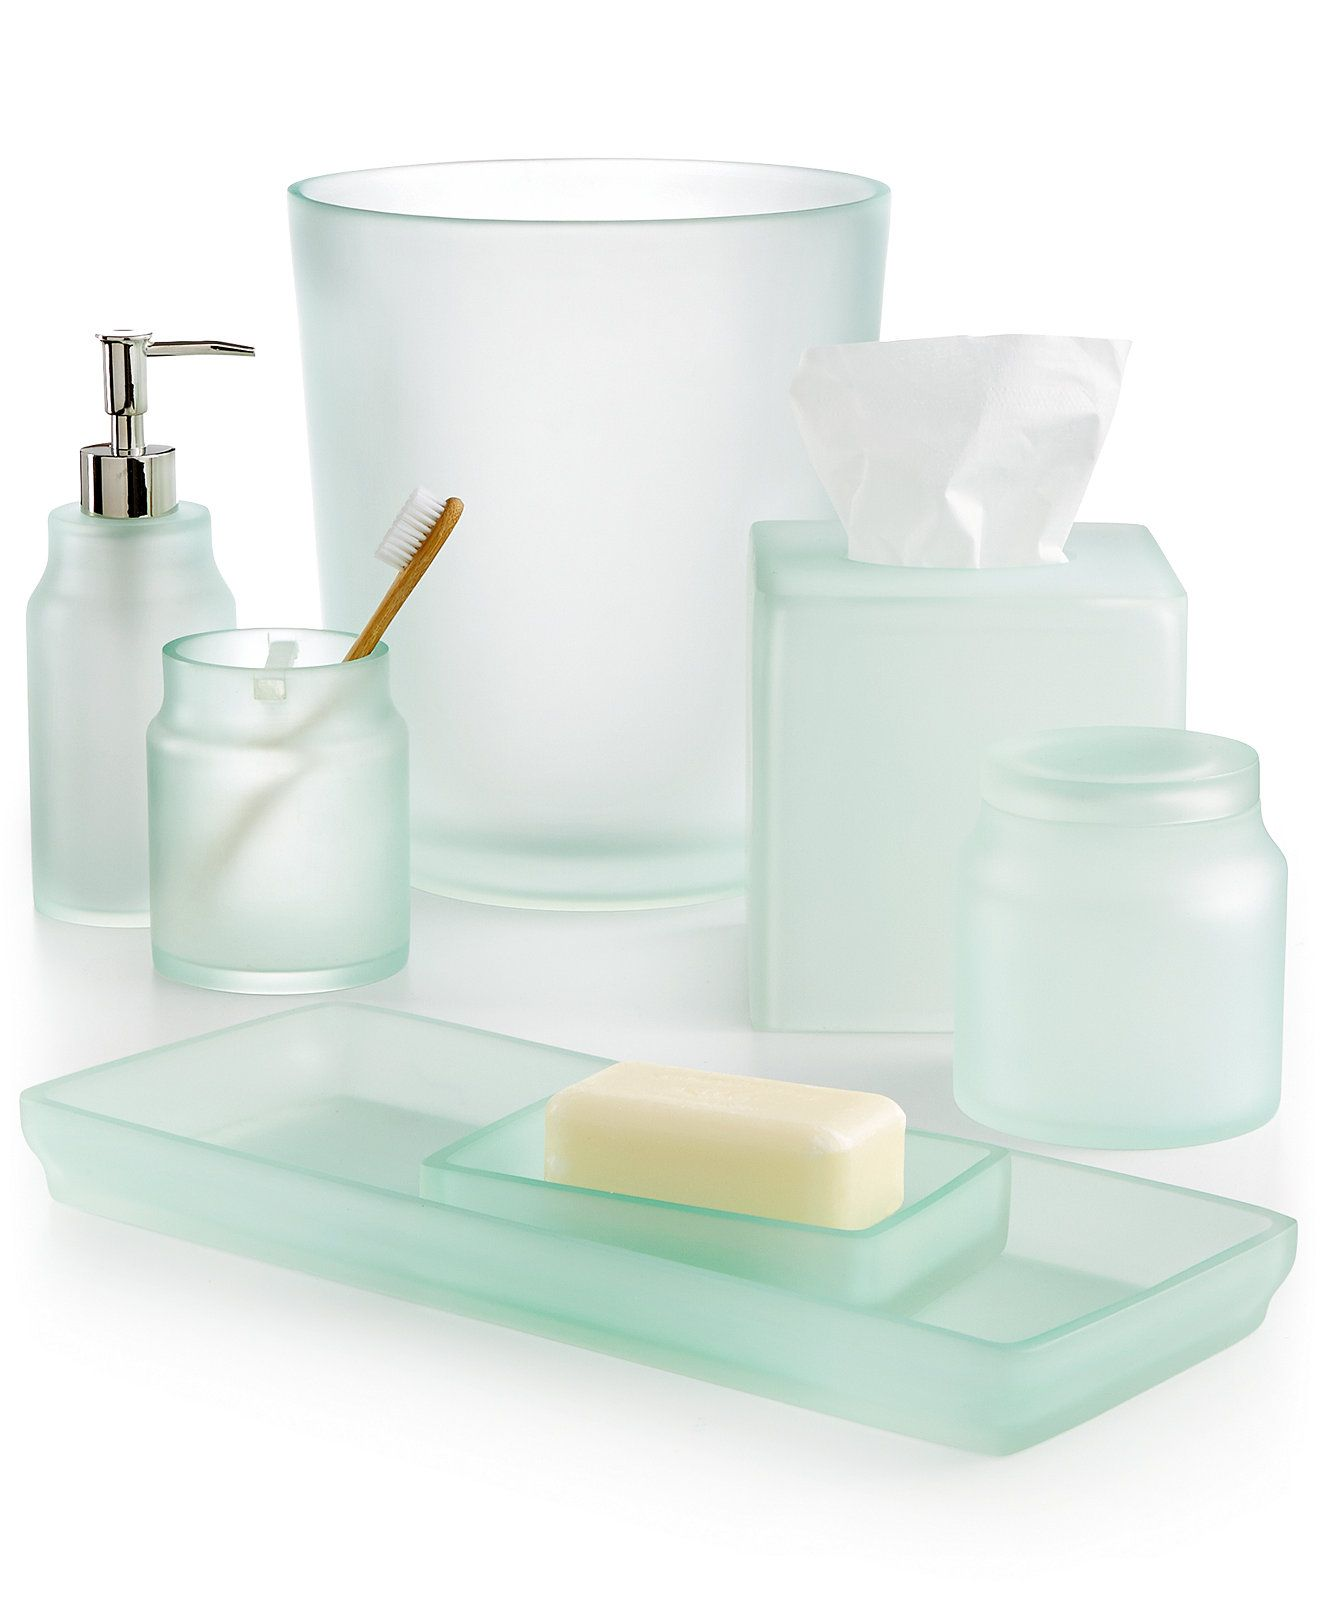 Shower Bathroom Sets: Martha Stewart Collection Frosted Resin Bath Accessories